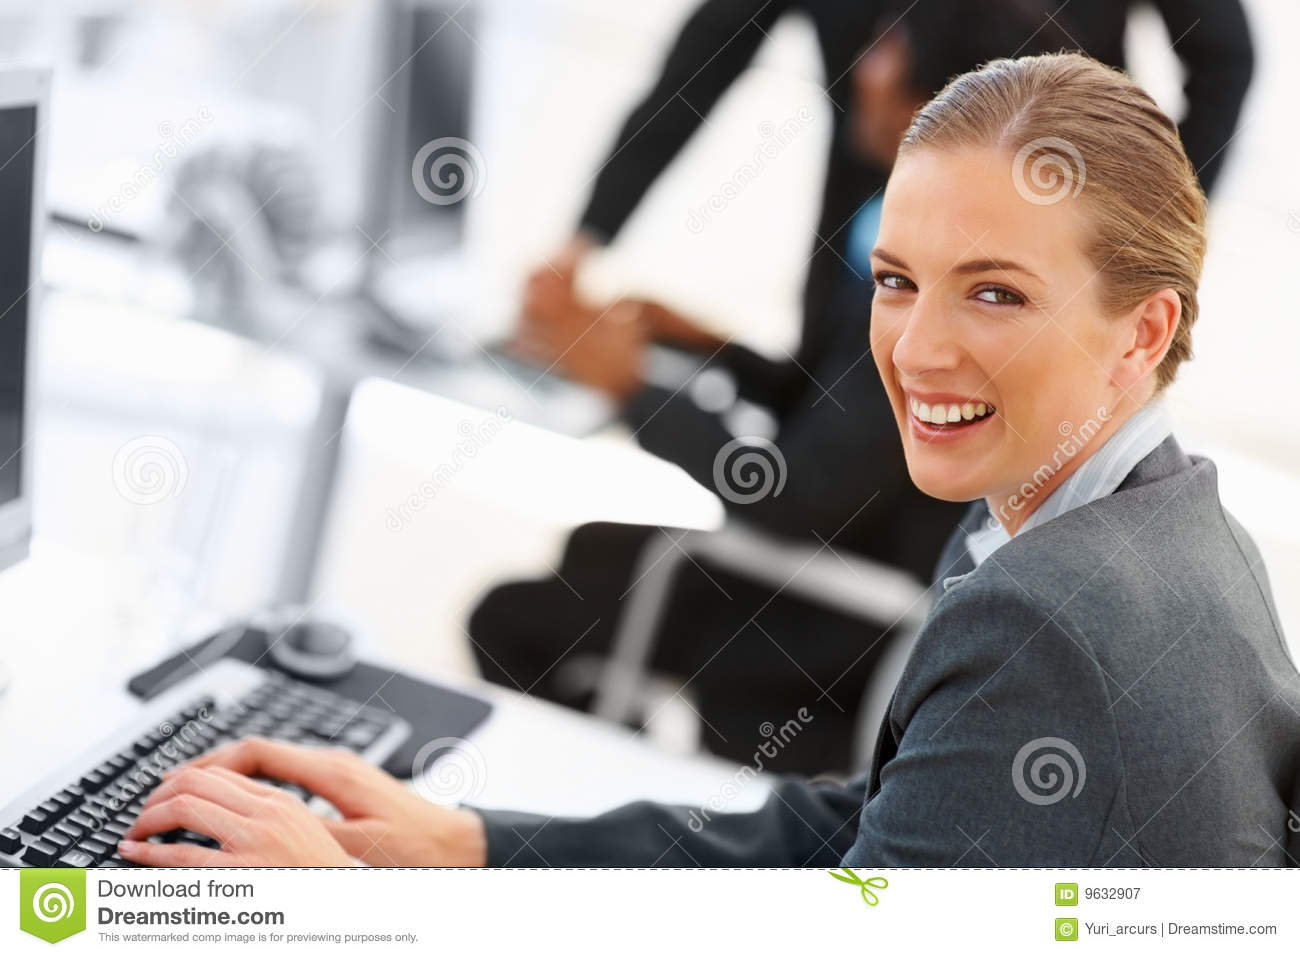 Cute business woman working on the computer